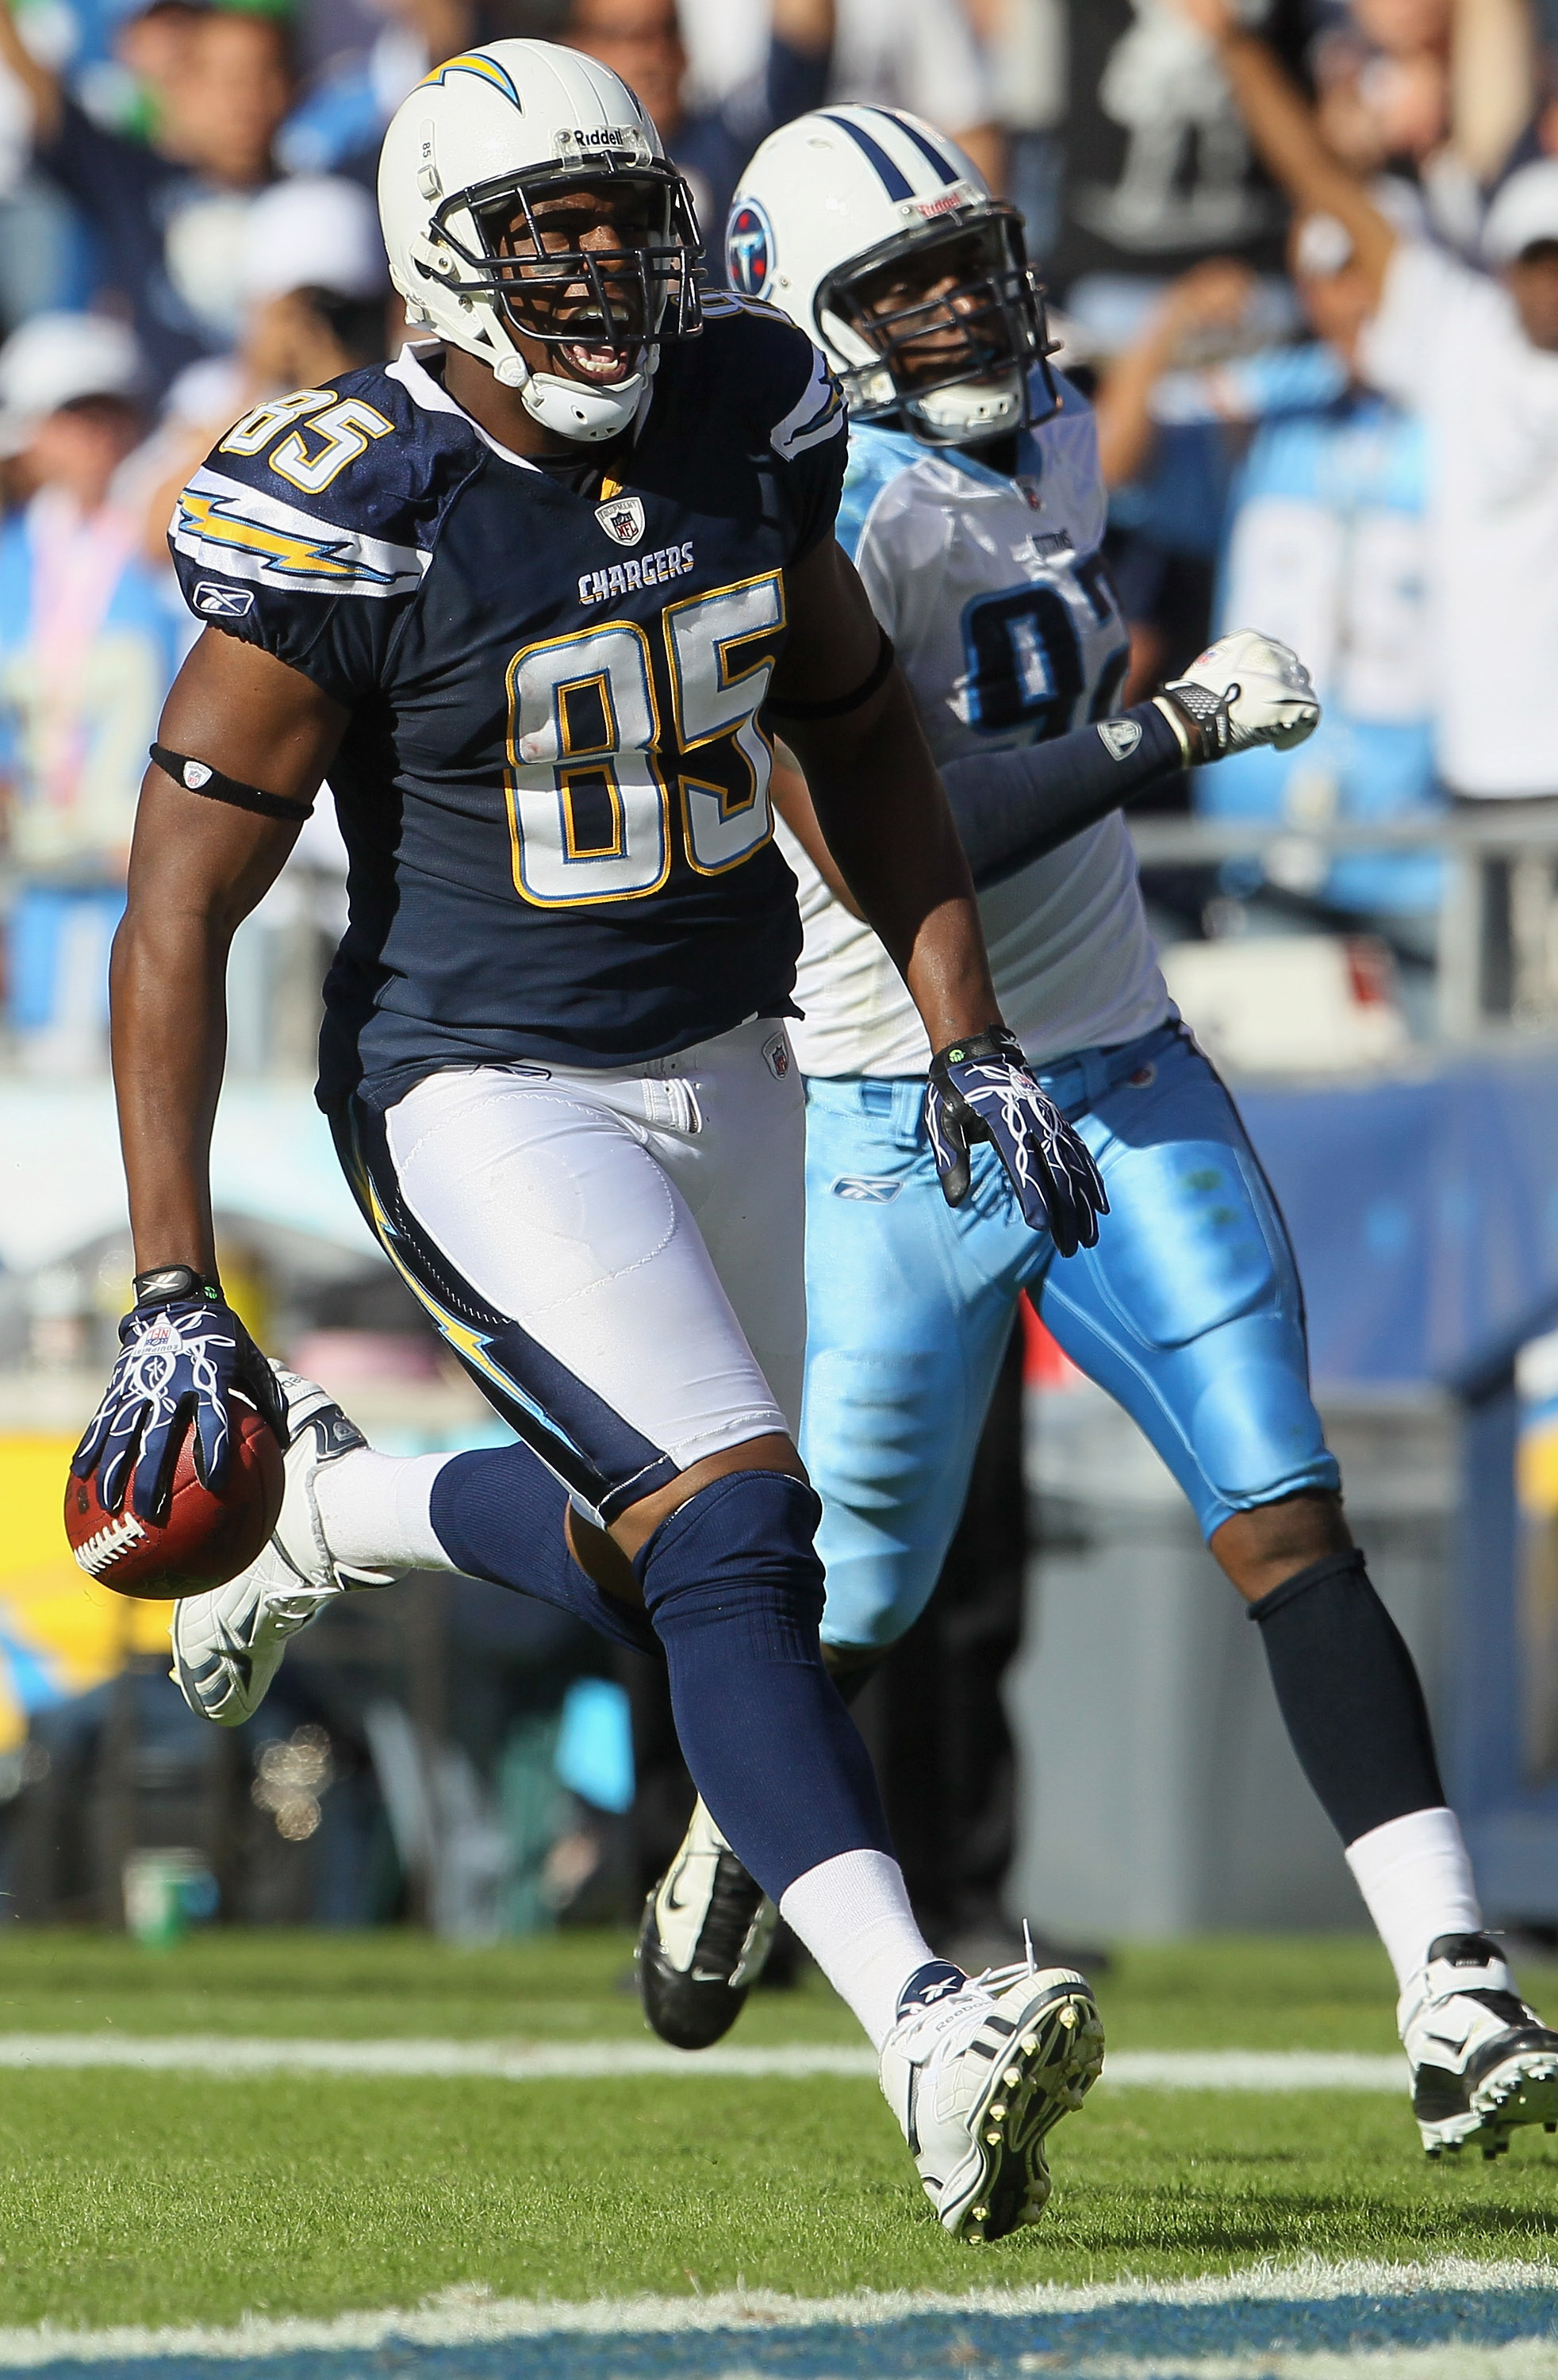 SAN DIEGO - OCTOBER 31:  Tight end Antonio Gates #85 of the San Diego Chargers outruns line backer Will Witherspoon #92 of the Tennessee Titans for a touchdown in the third quarter at Qualcomm Stadium on October 31, 2010 in San Diego, California. The Char